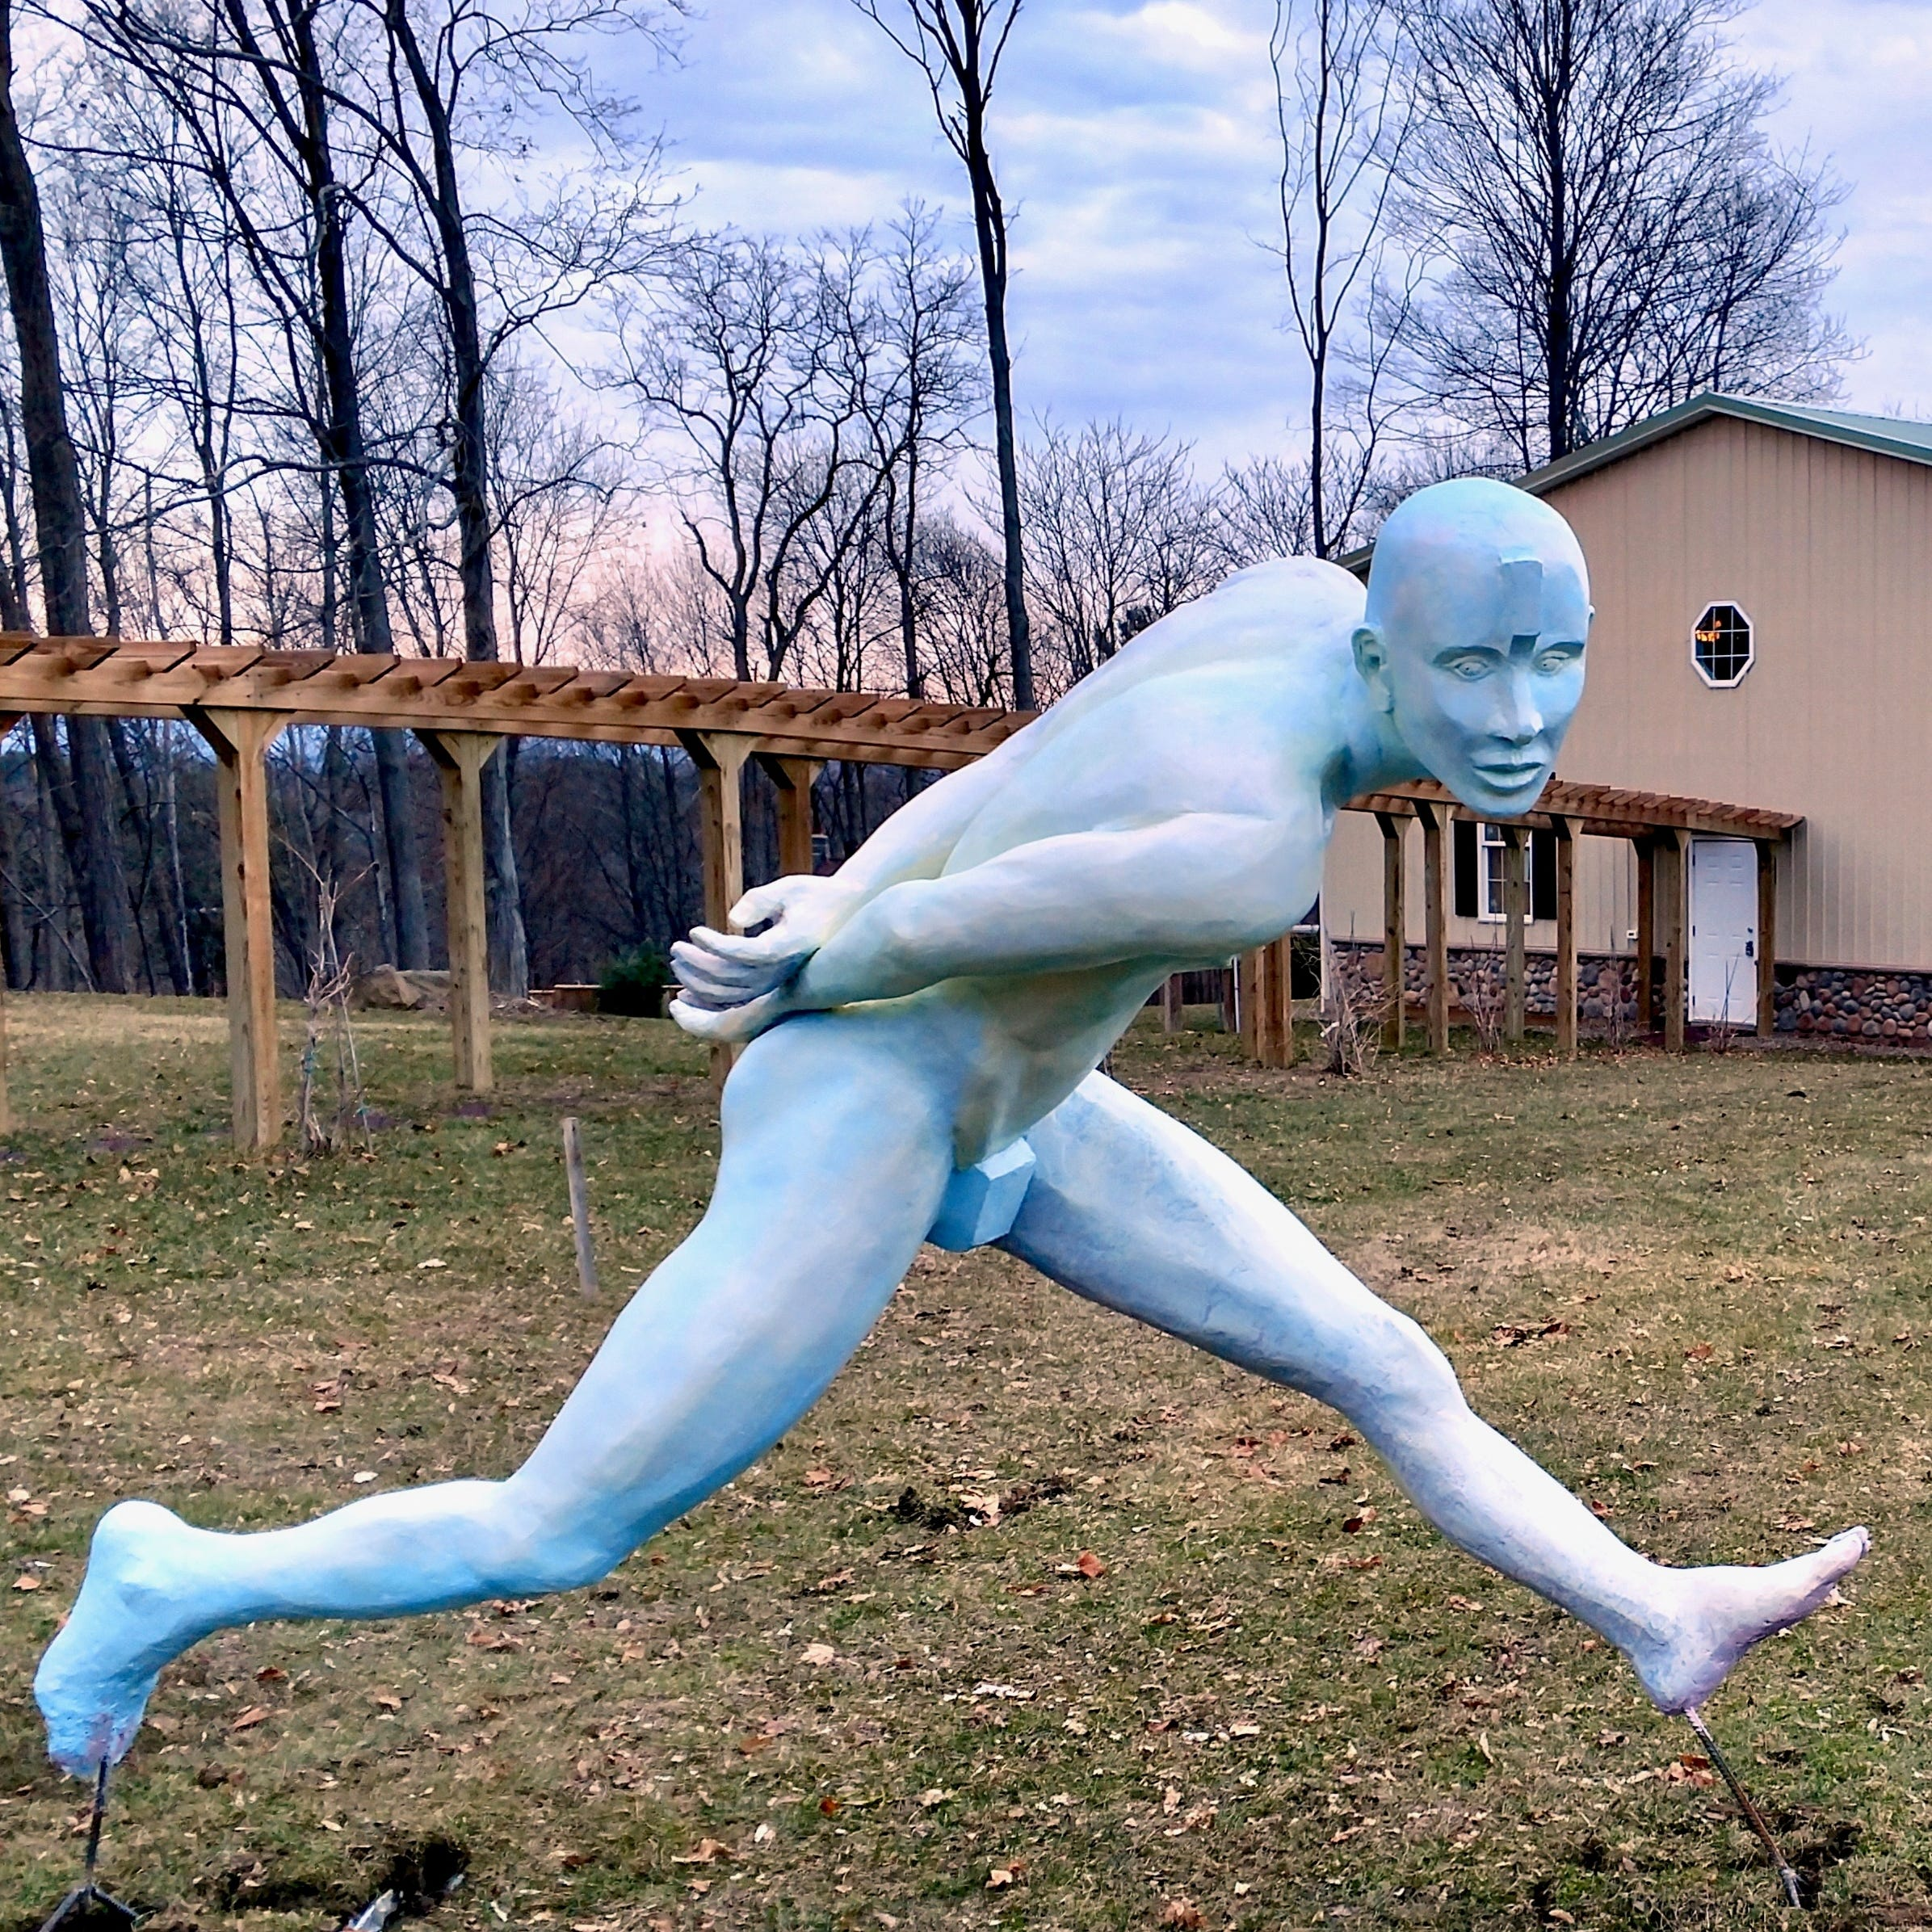 Emporium Sculpture Park features work by regional artists off Route 9 in Staatsburg